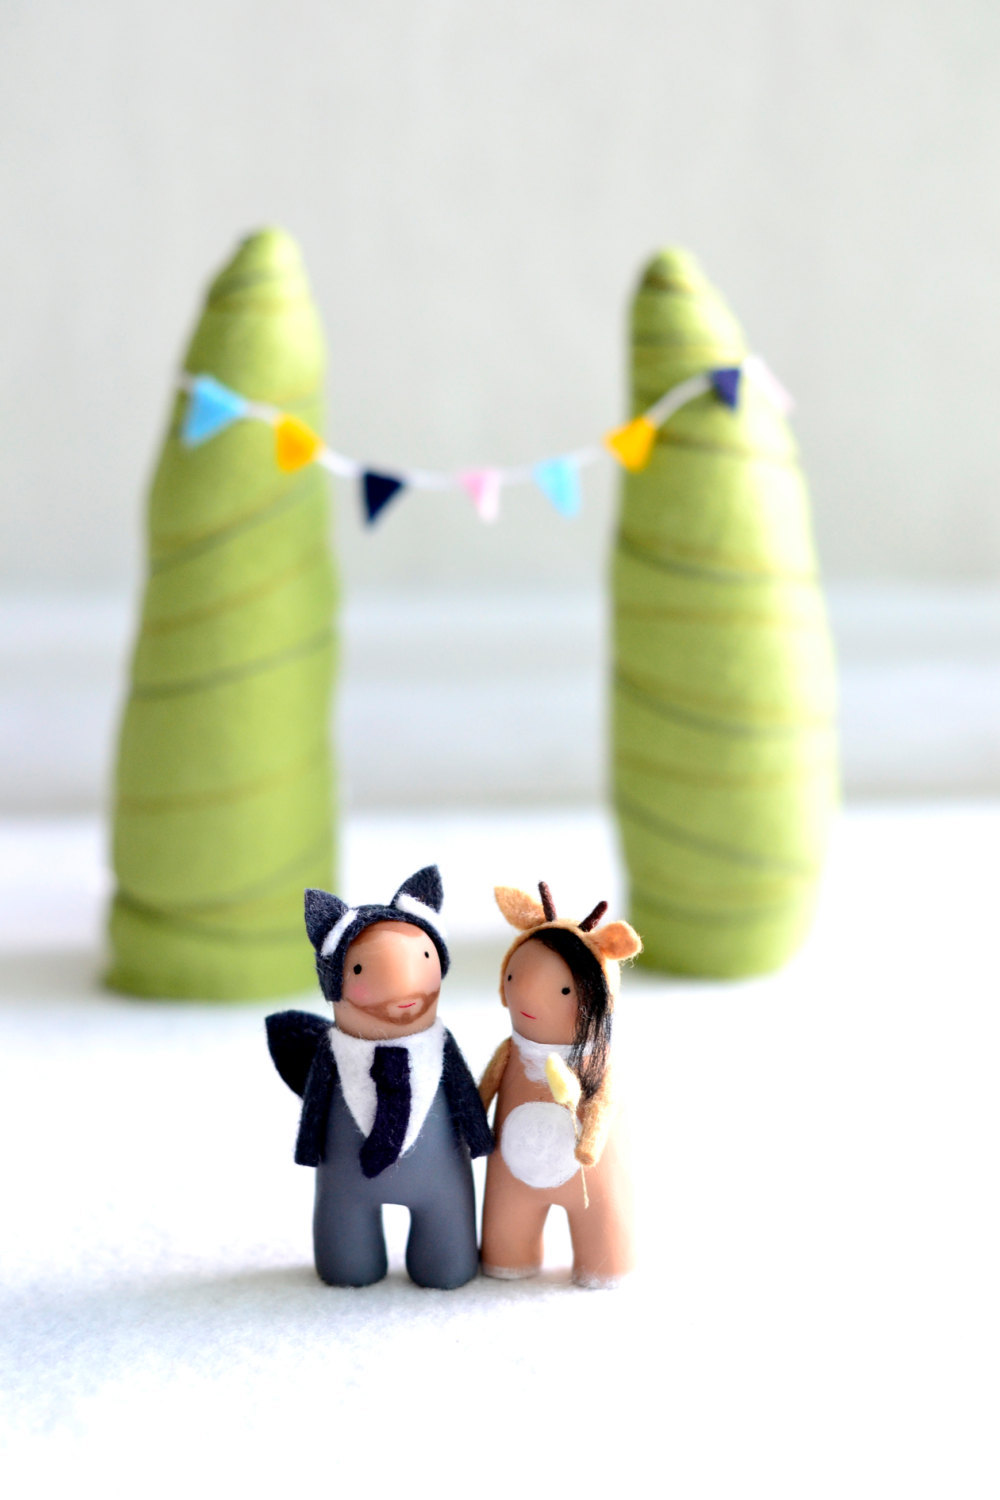 Cute-custom-wedding-cake-toppers-by-royalmint-3.full